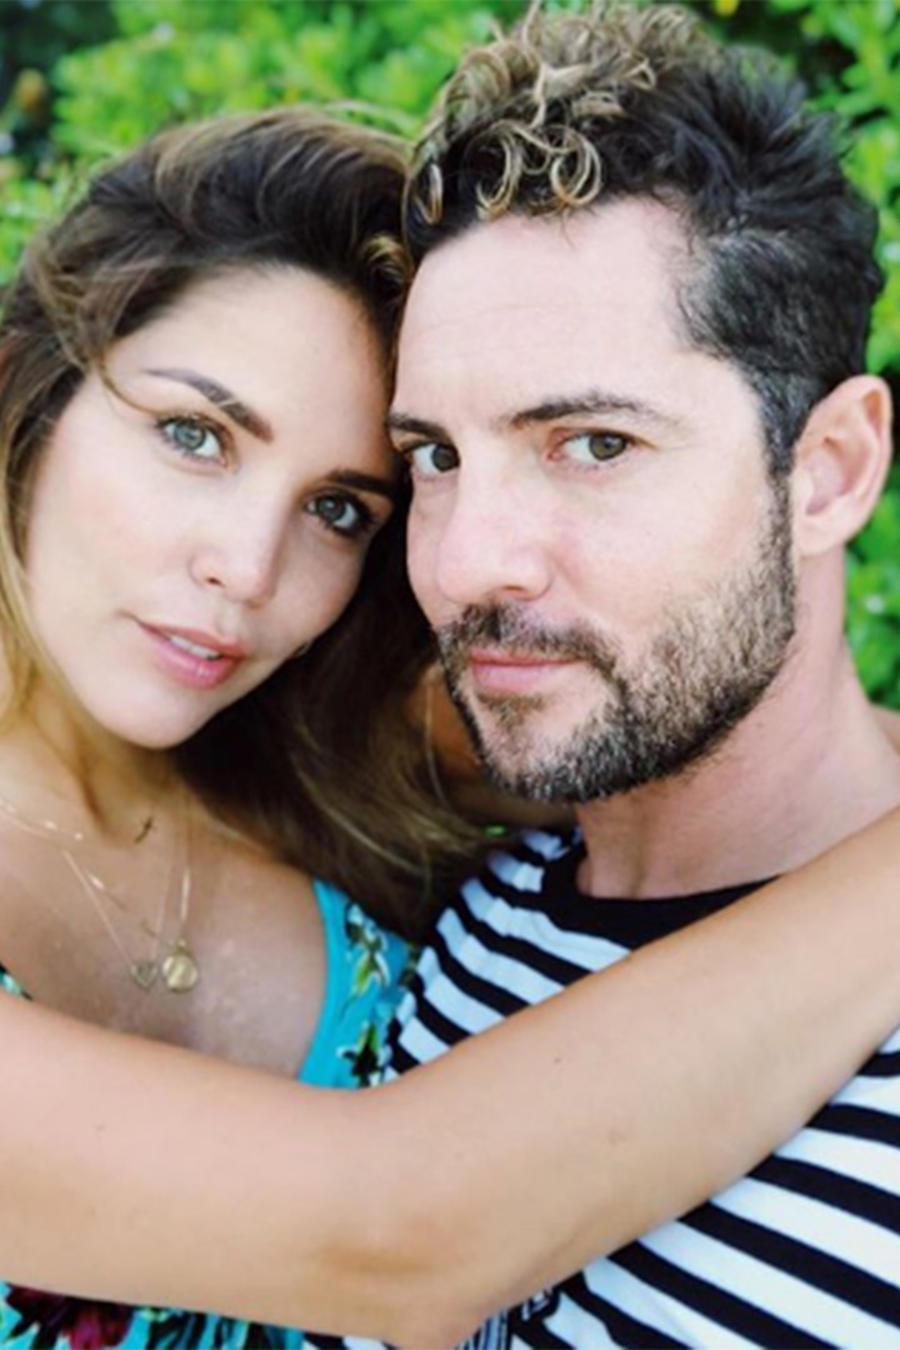 David Bisbal and Rosanna Zanetti